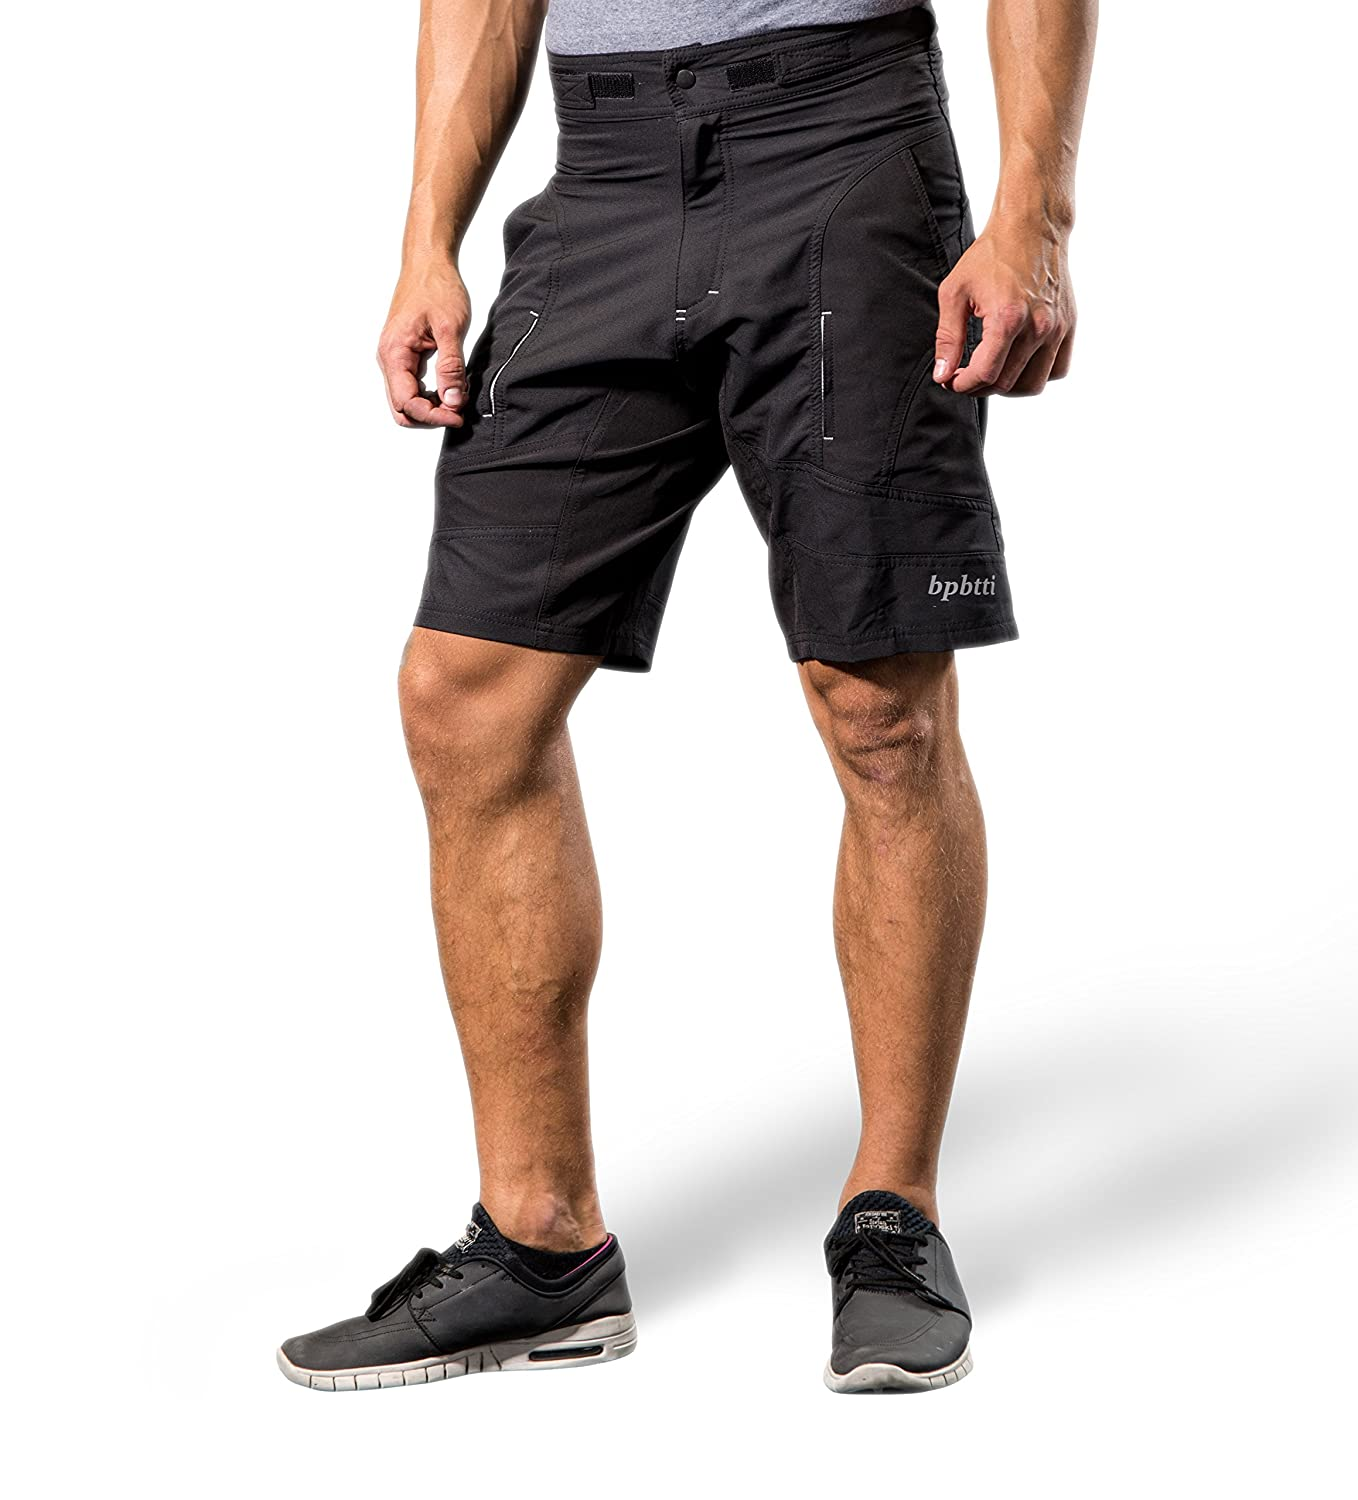 Bpbtti Mens Baggy MTB Mountain Bike Shorts with Removable Biking Bicycle Cycling Padded Liner Short (Black, Waist 29-31 - Small) Waist 29-31 - Small)